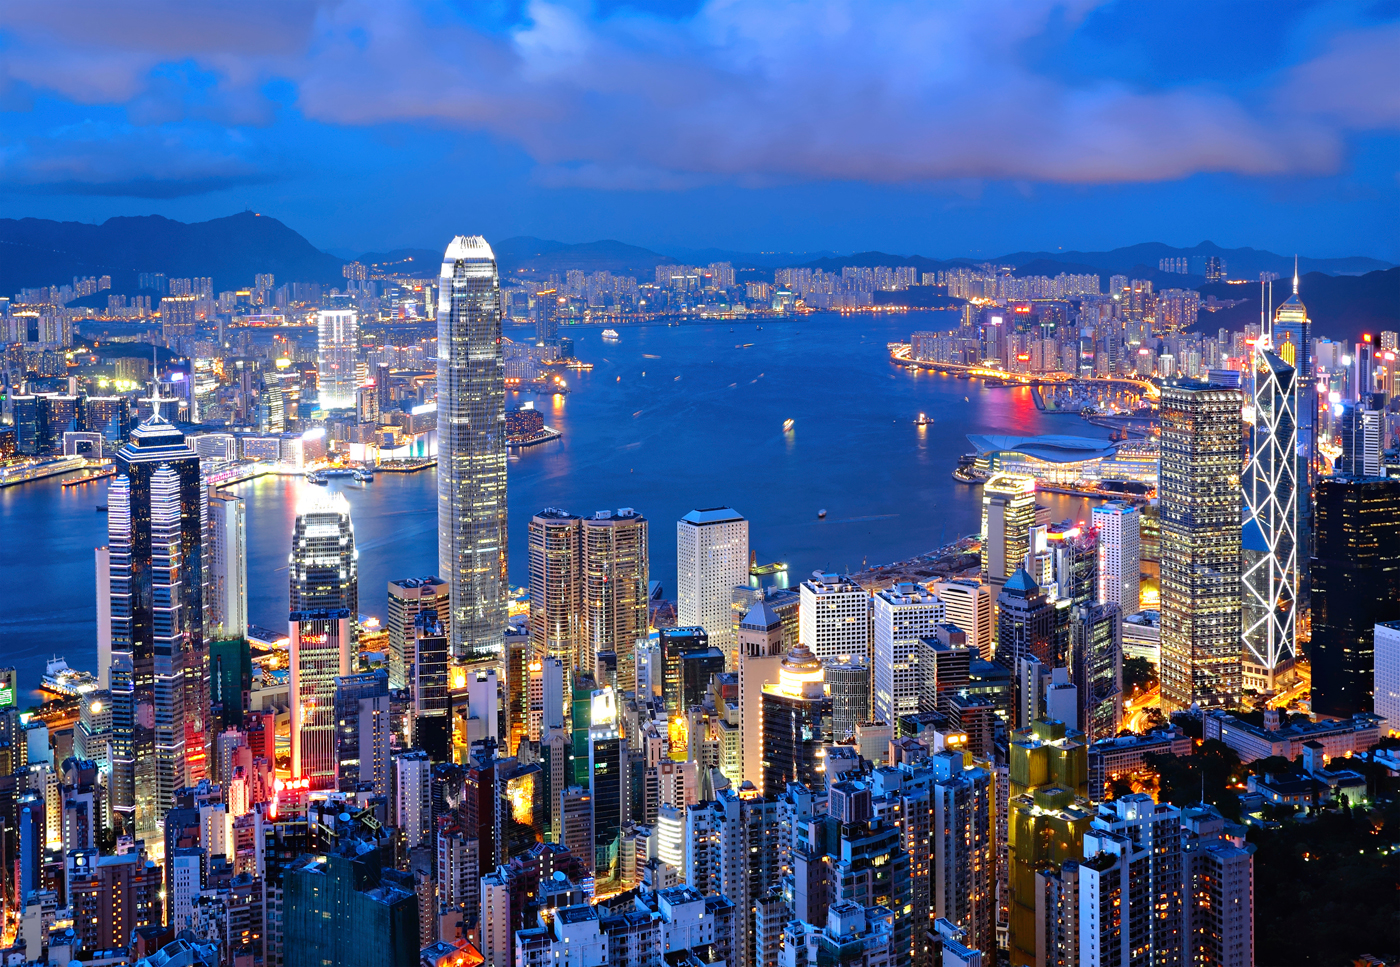 From $570Roundtrip Air Ticket From San Francisco to Hong Kong @ Orbitz